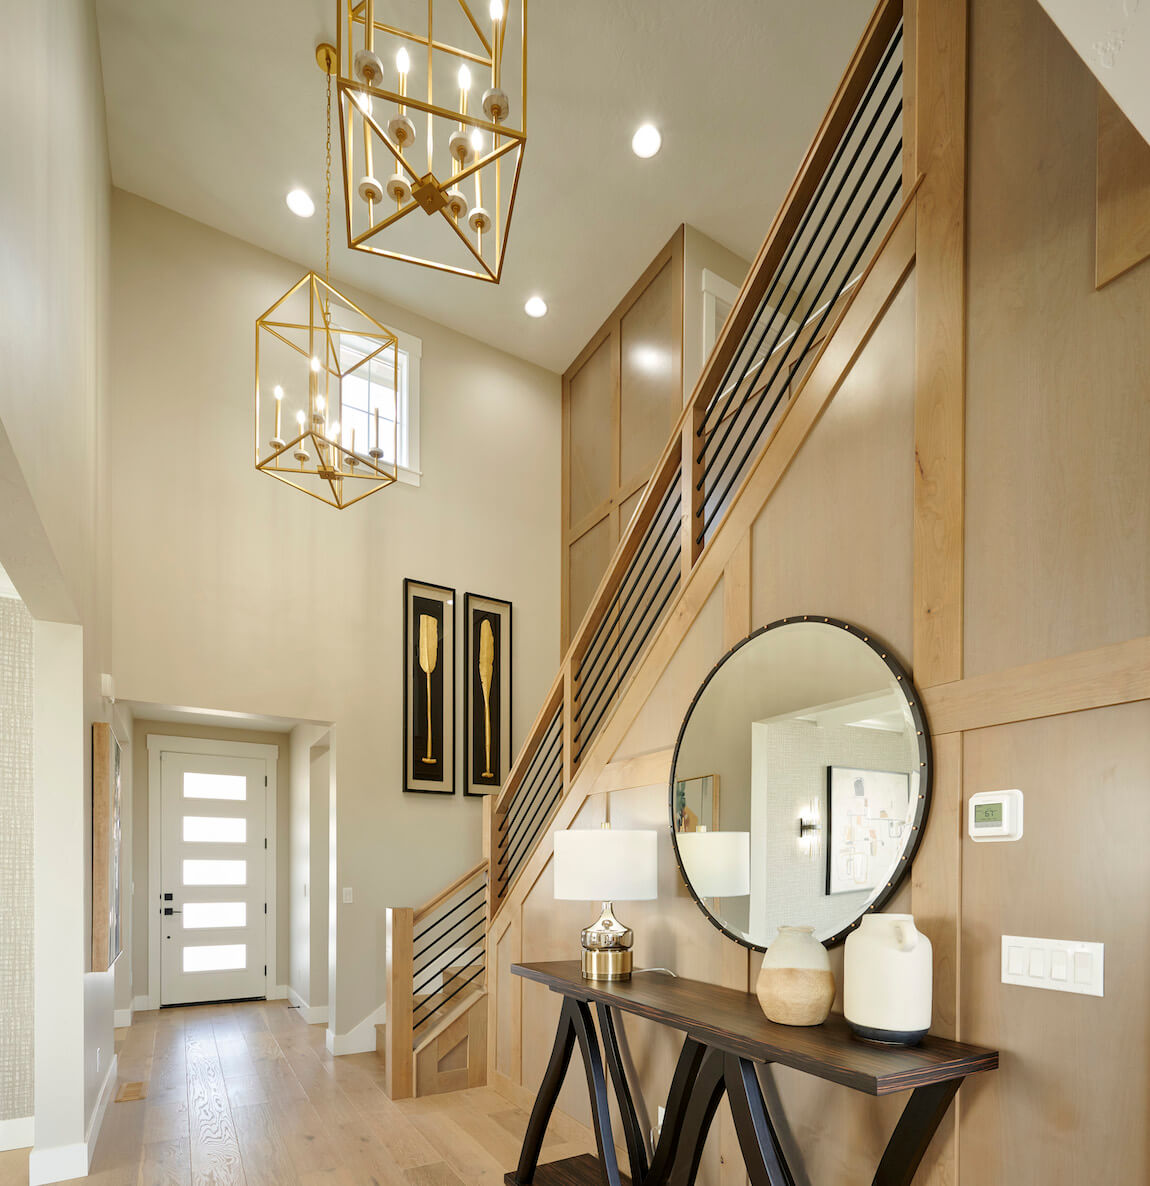 Foyer entryway with stunning lighting fixture designs